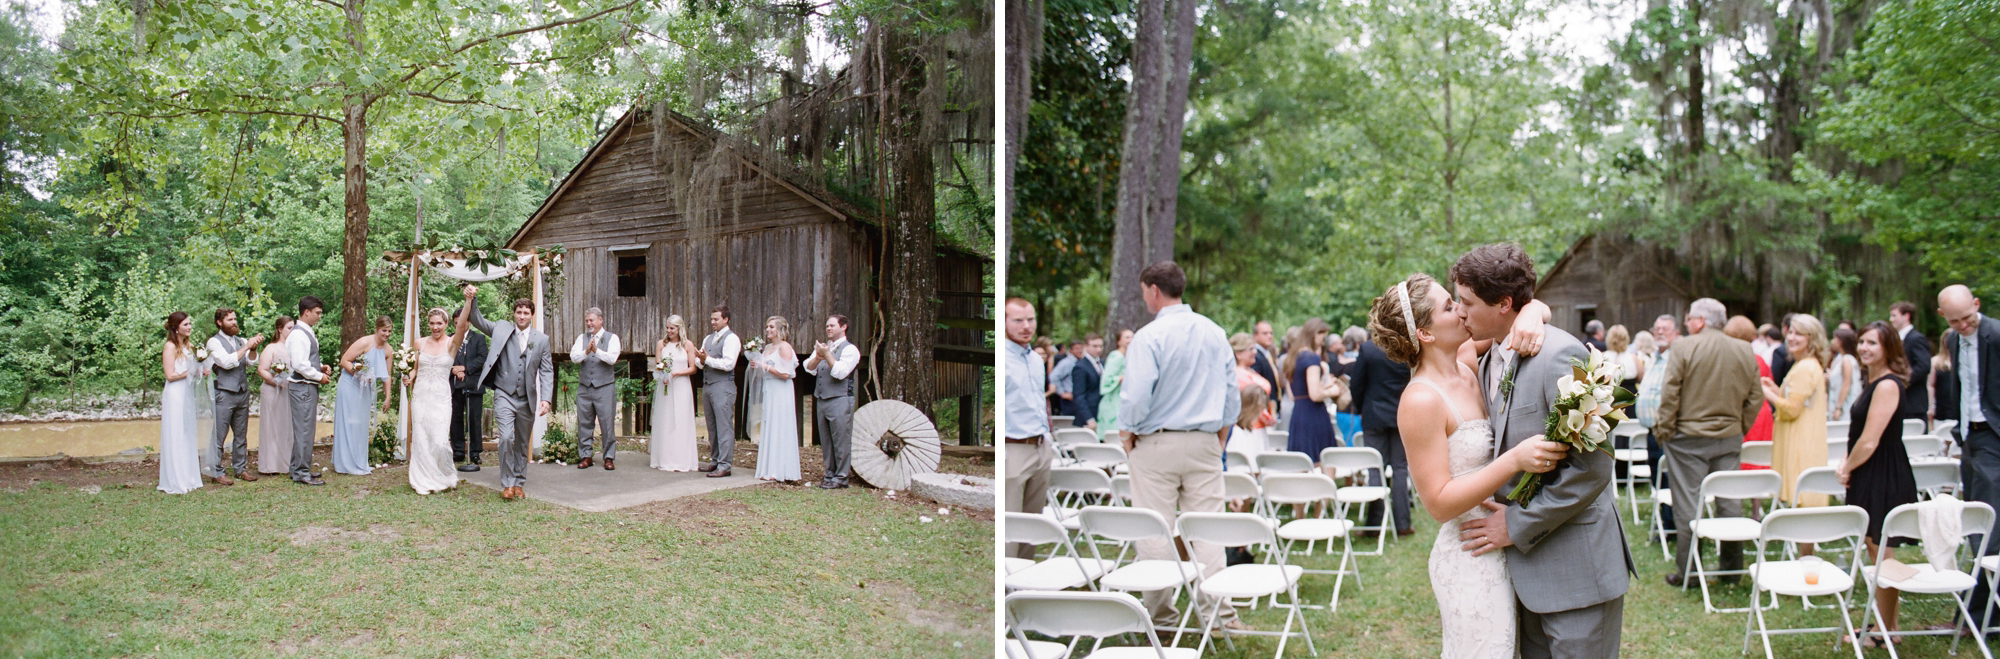 film wedding photographer_0029